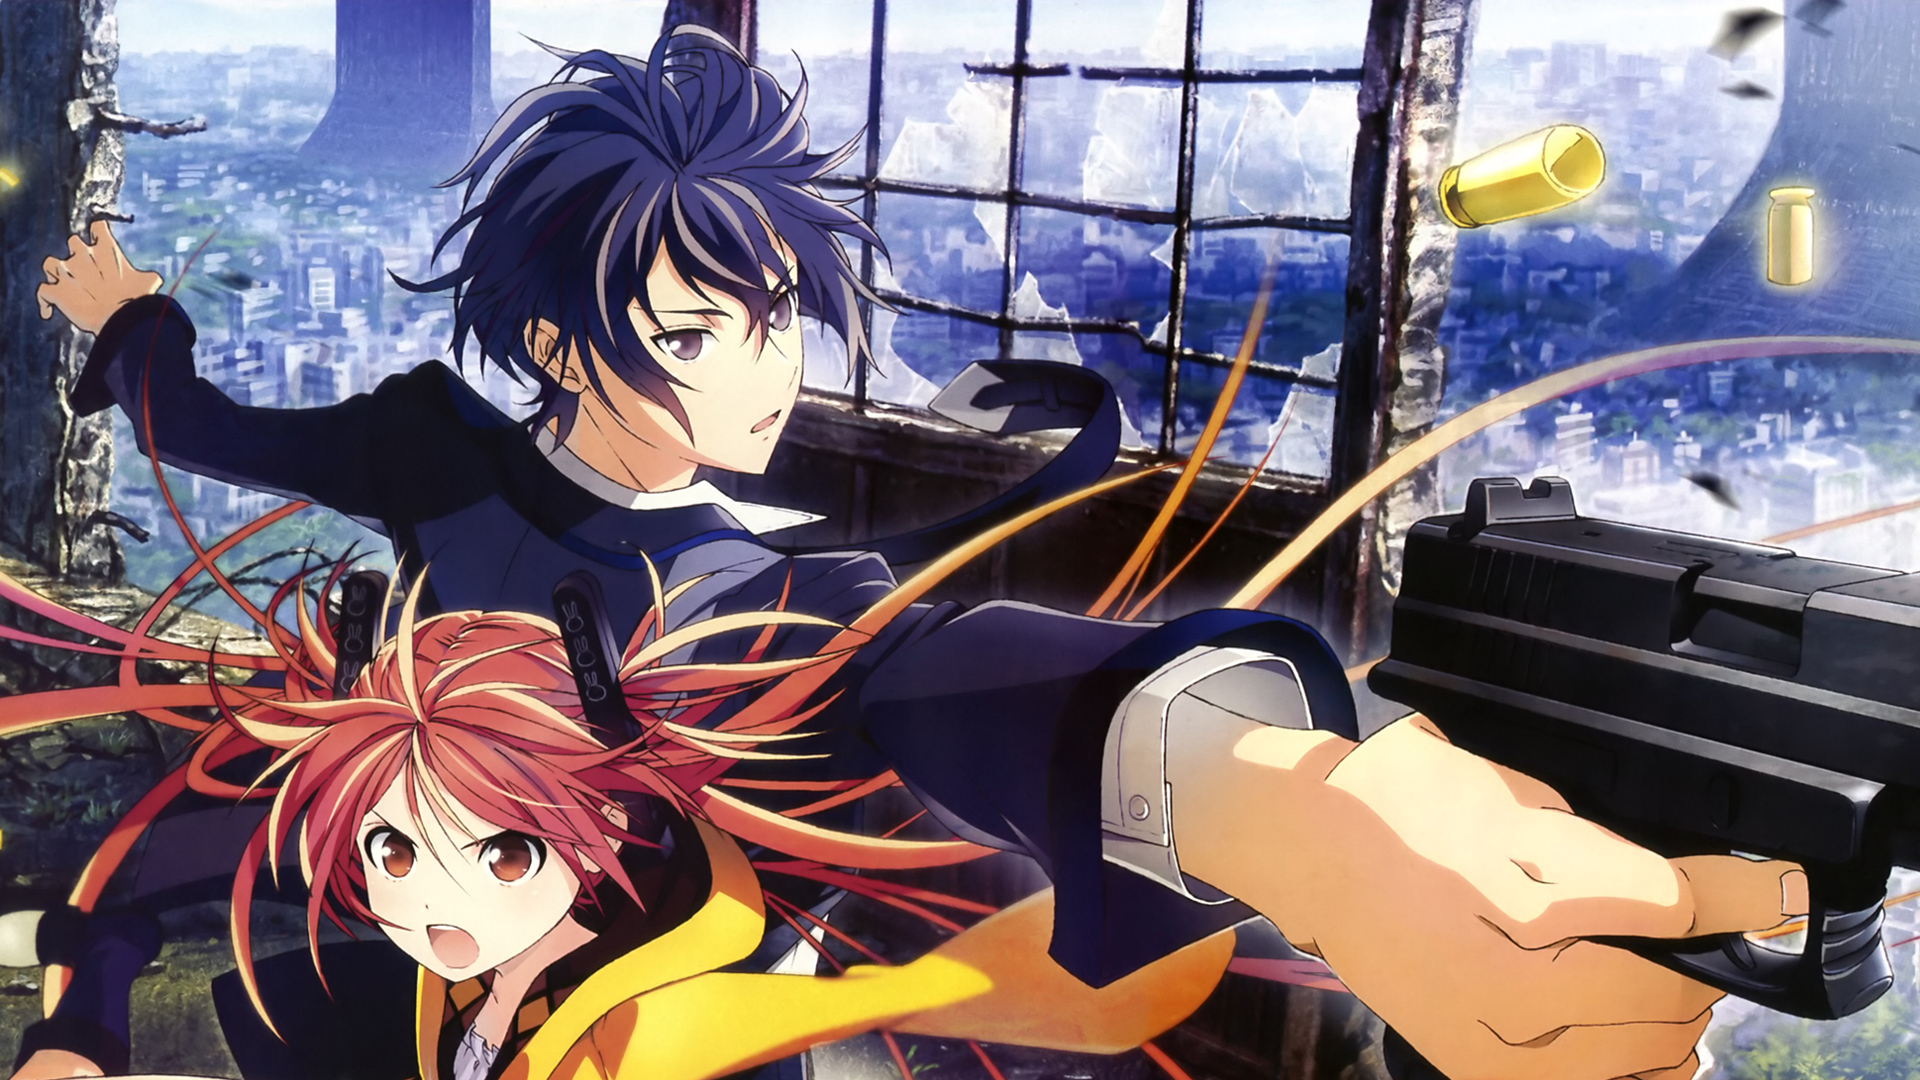 black bullet anime 1080p 7k wallpaper hd